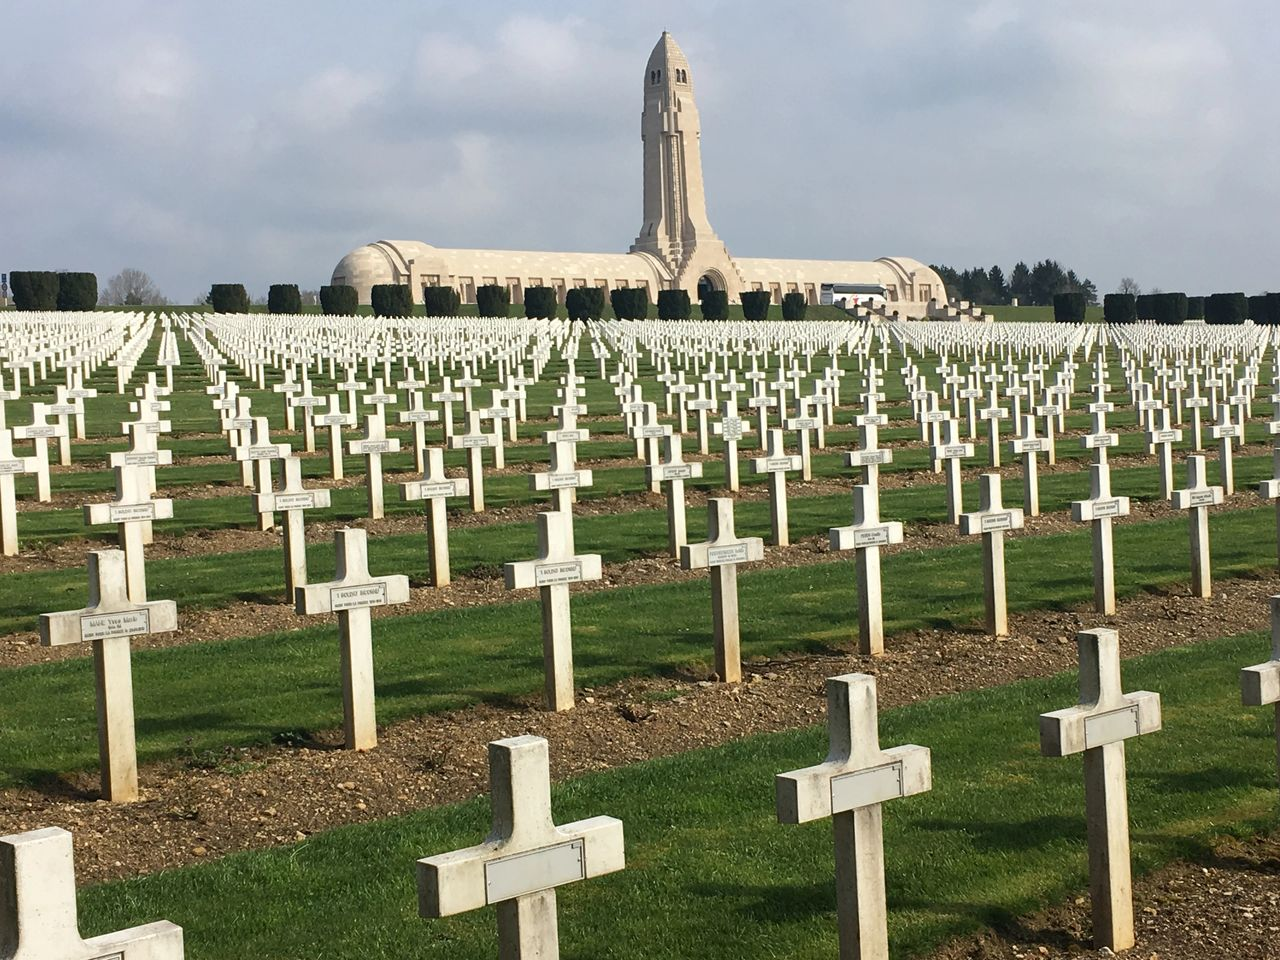 Sad cemetery in Verdun, with the stark and haunting Douaumont Ossuary in the background.